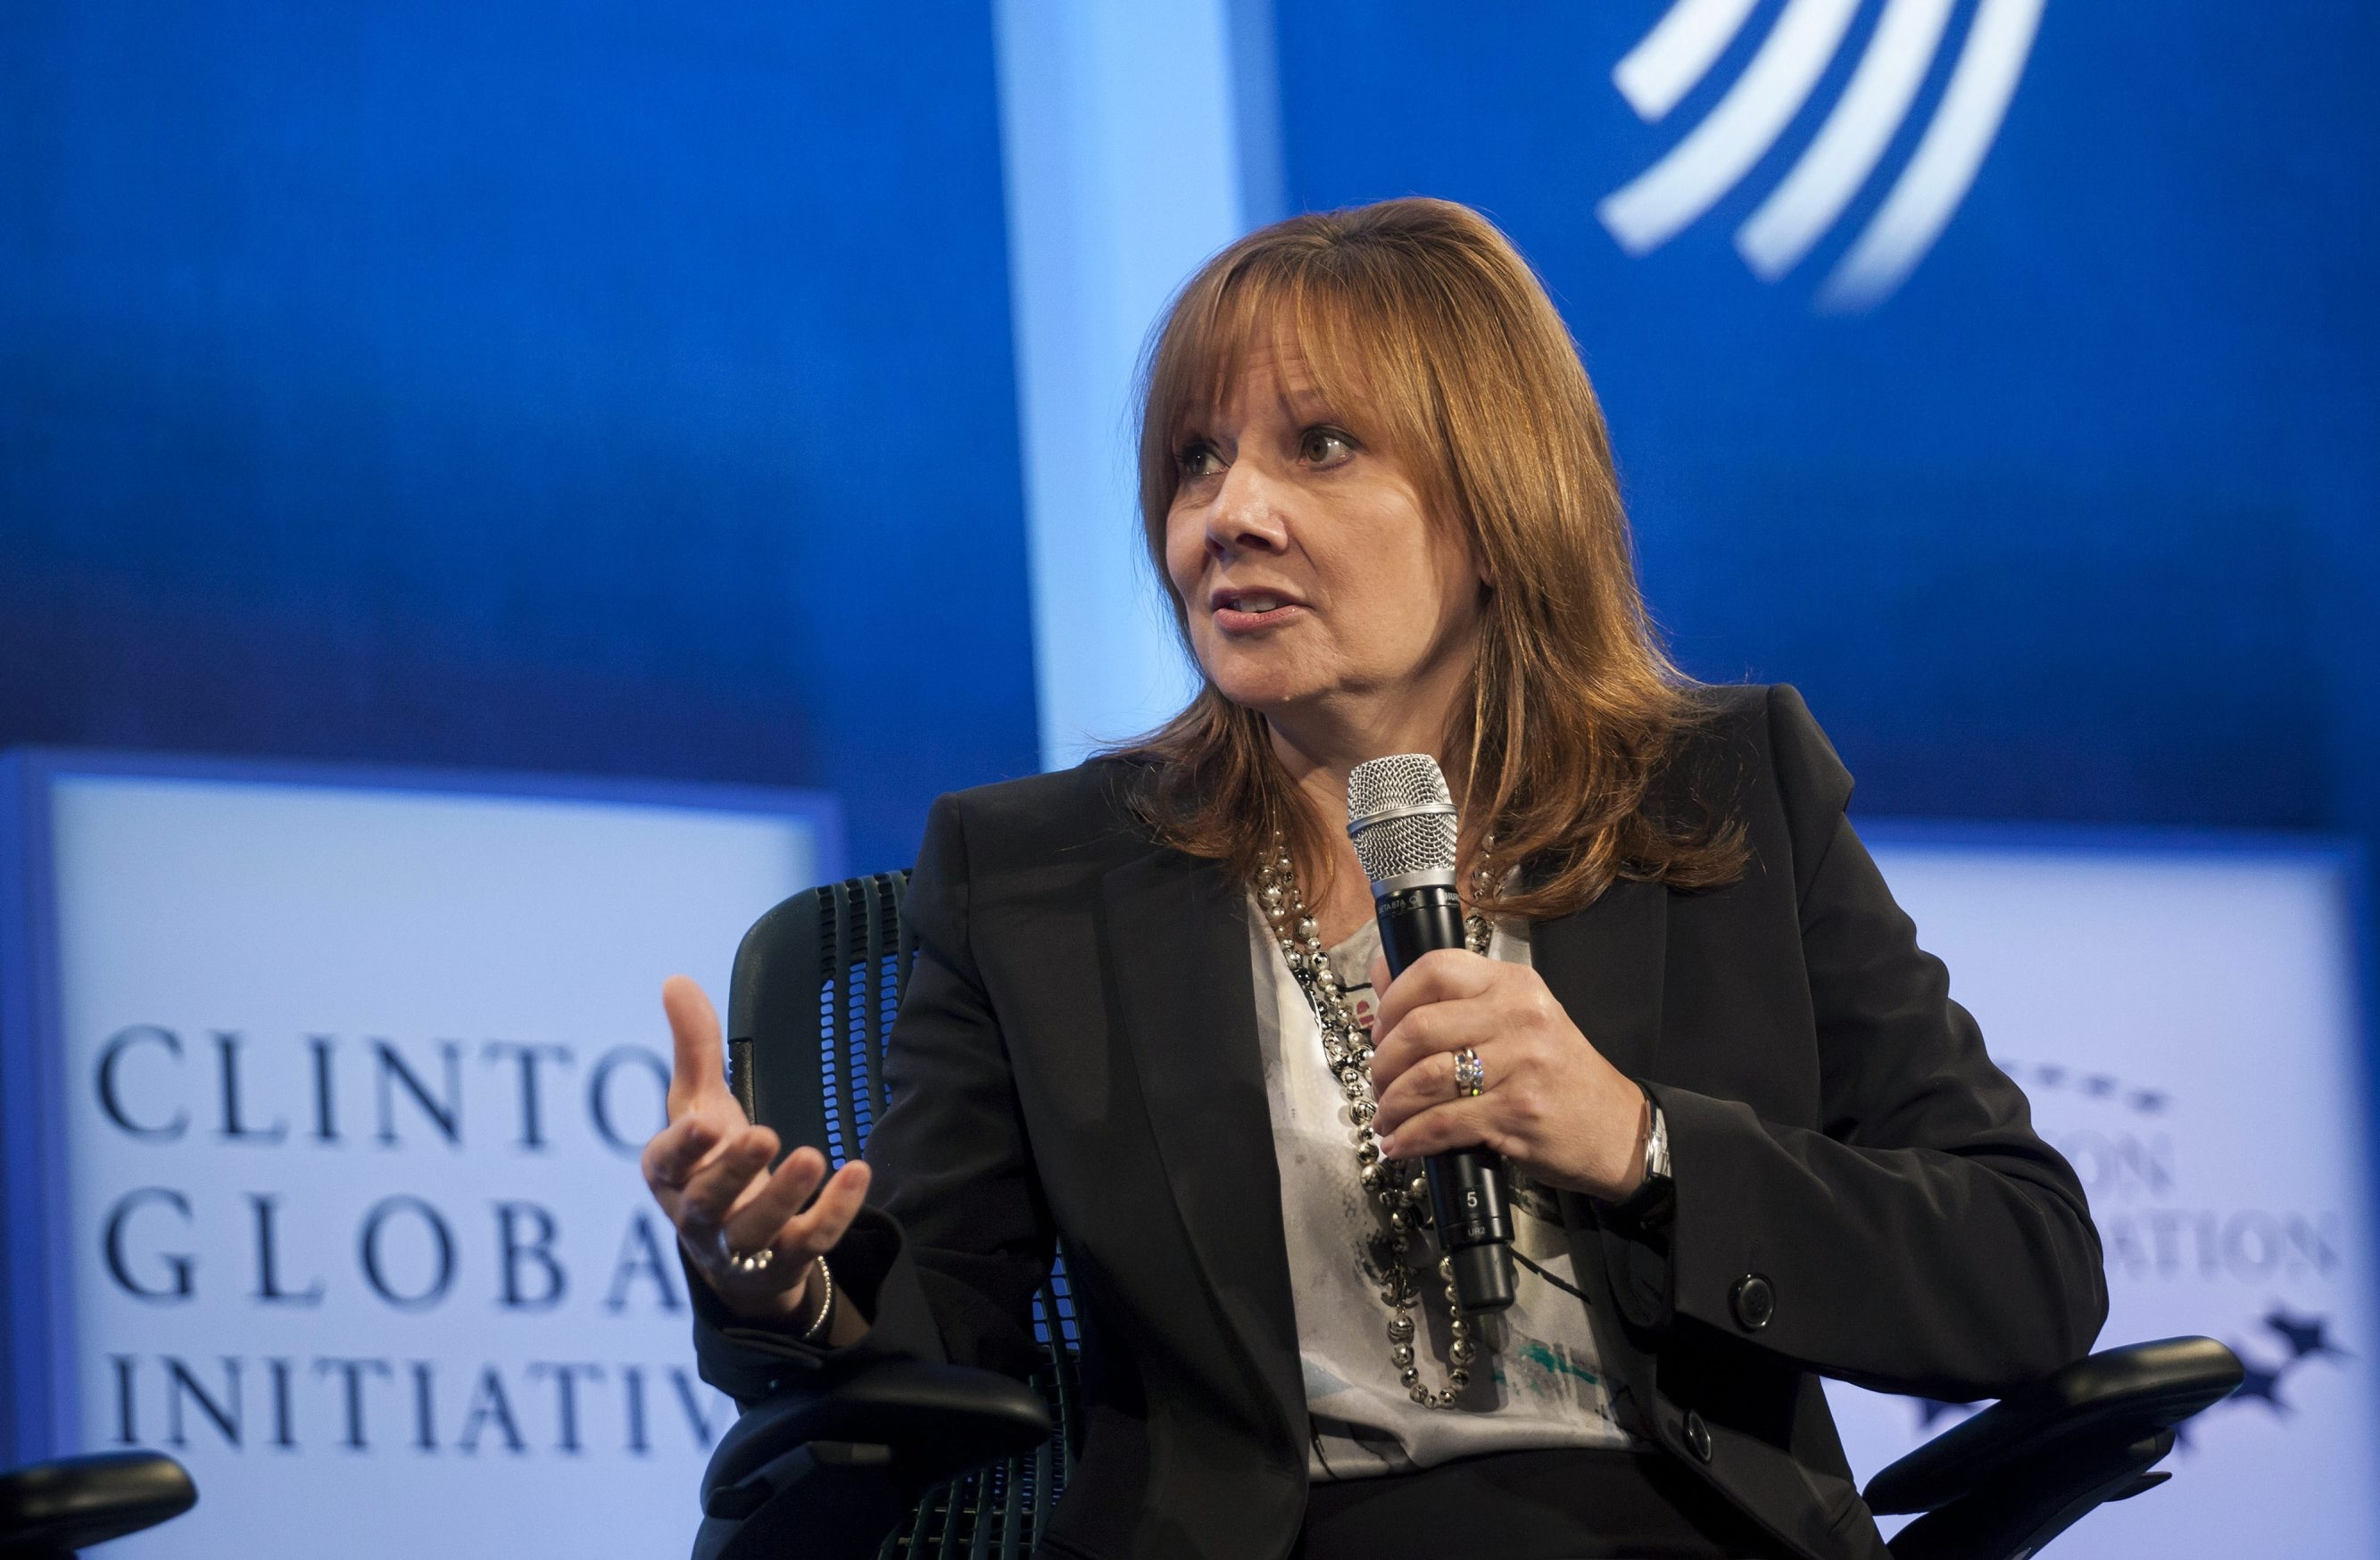 Mary Barra, chief executive officer of General Motors Co., has weathered Congressional hearings, public outcry and a blistering internal investigation over vehicle defects that have been linked to 29 deaths.